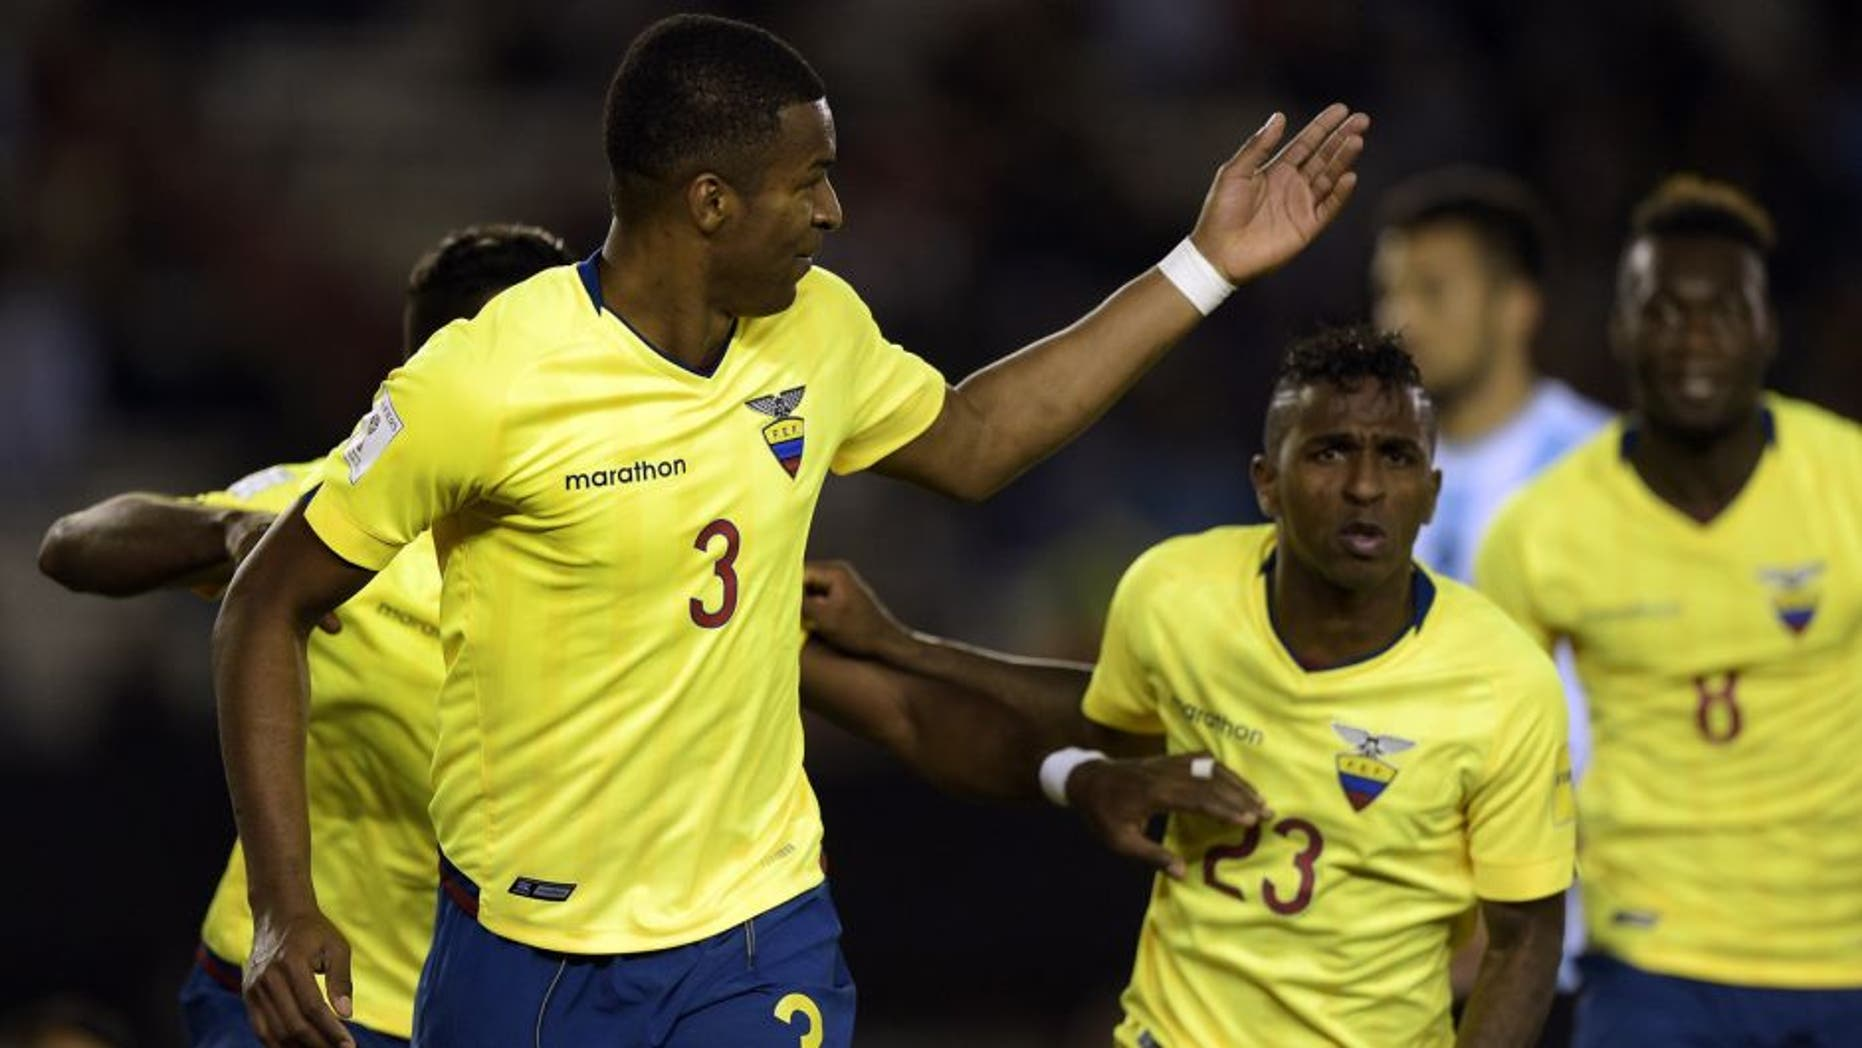 Ecuador's defender Frickson Erazo (L) celebrates after scoring against Argentina during their Russia 2018 FIFA World Cup qualifiers match, at the Monumental stadium in Buenos Aires, on October 8, 2015. AFP PHOTO / JUAN MABROMATA (Photo credit should read JUAN MABROMATA/AFP/Getty Images)